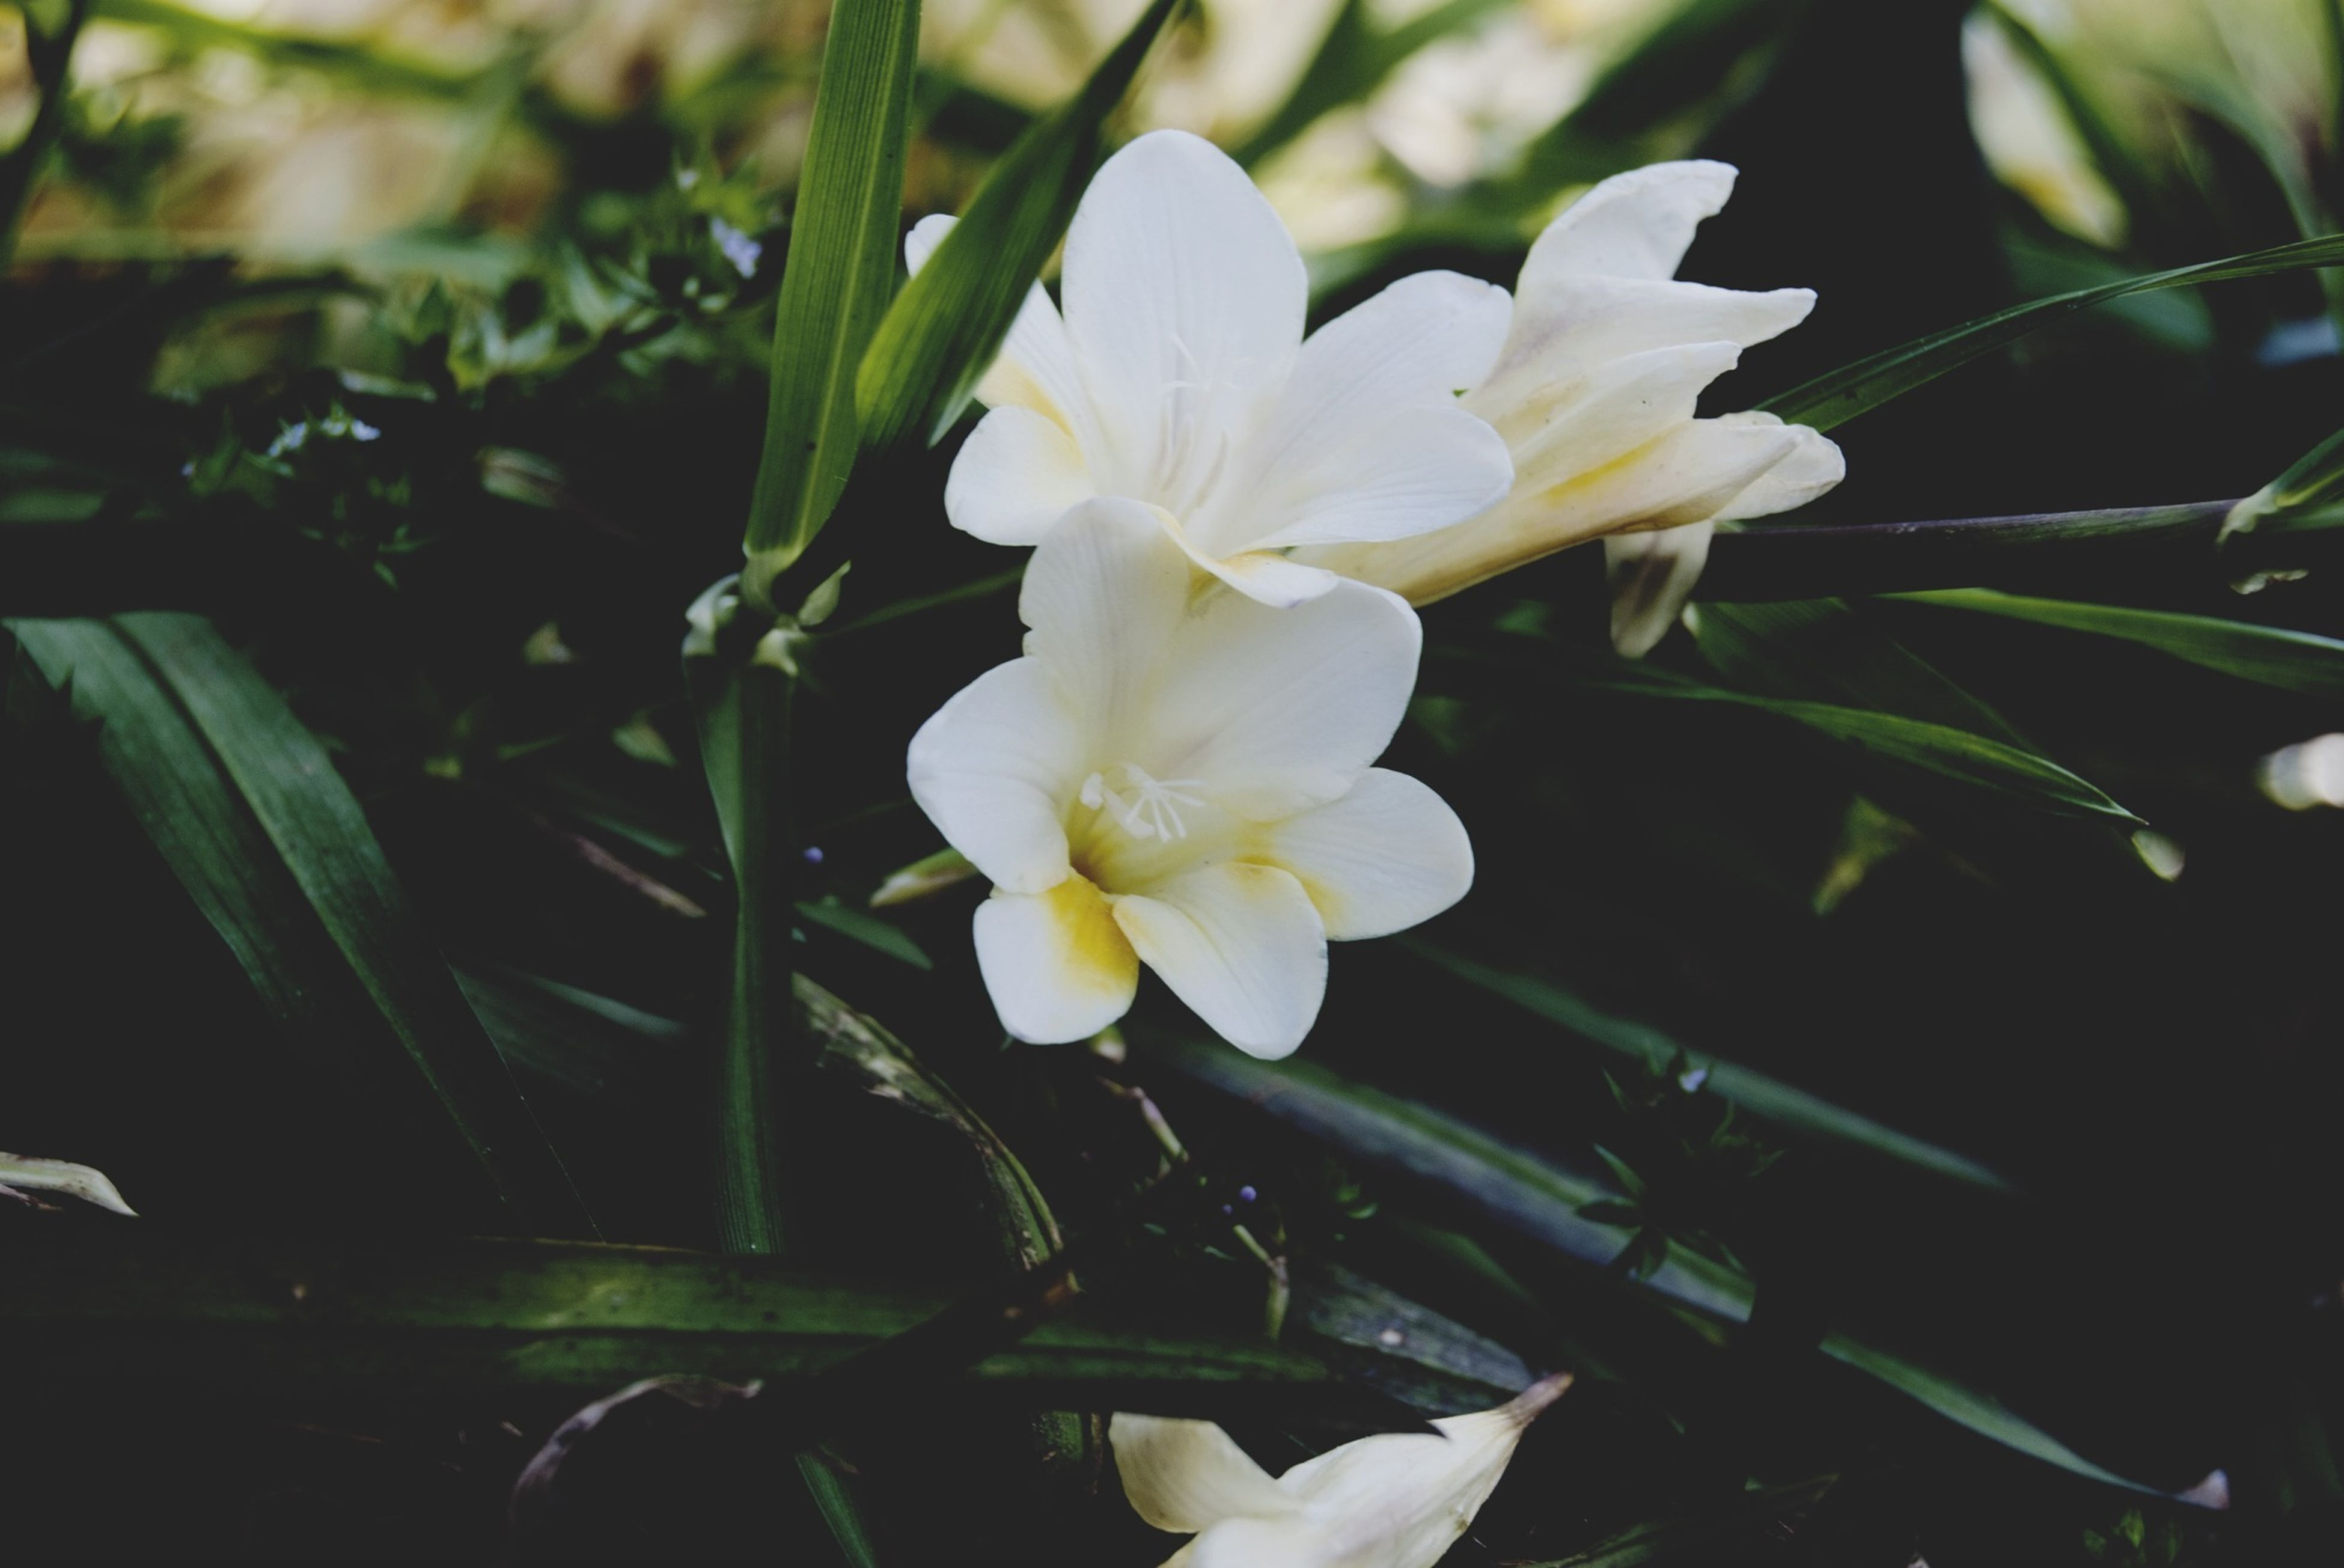 flower, petal, freshness, white color, flower head, fragility, growth, beauty in nature, blooming, focus on foreground, close-up, plant, nature, white, field, in bloom, stem, outdoors, no people, leaf